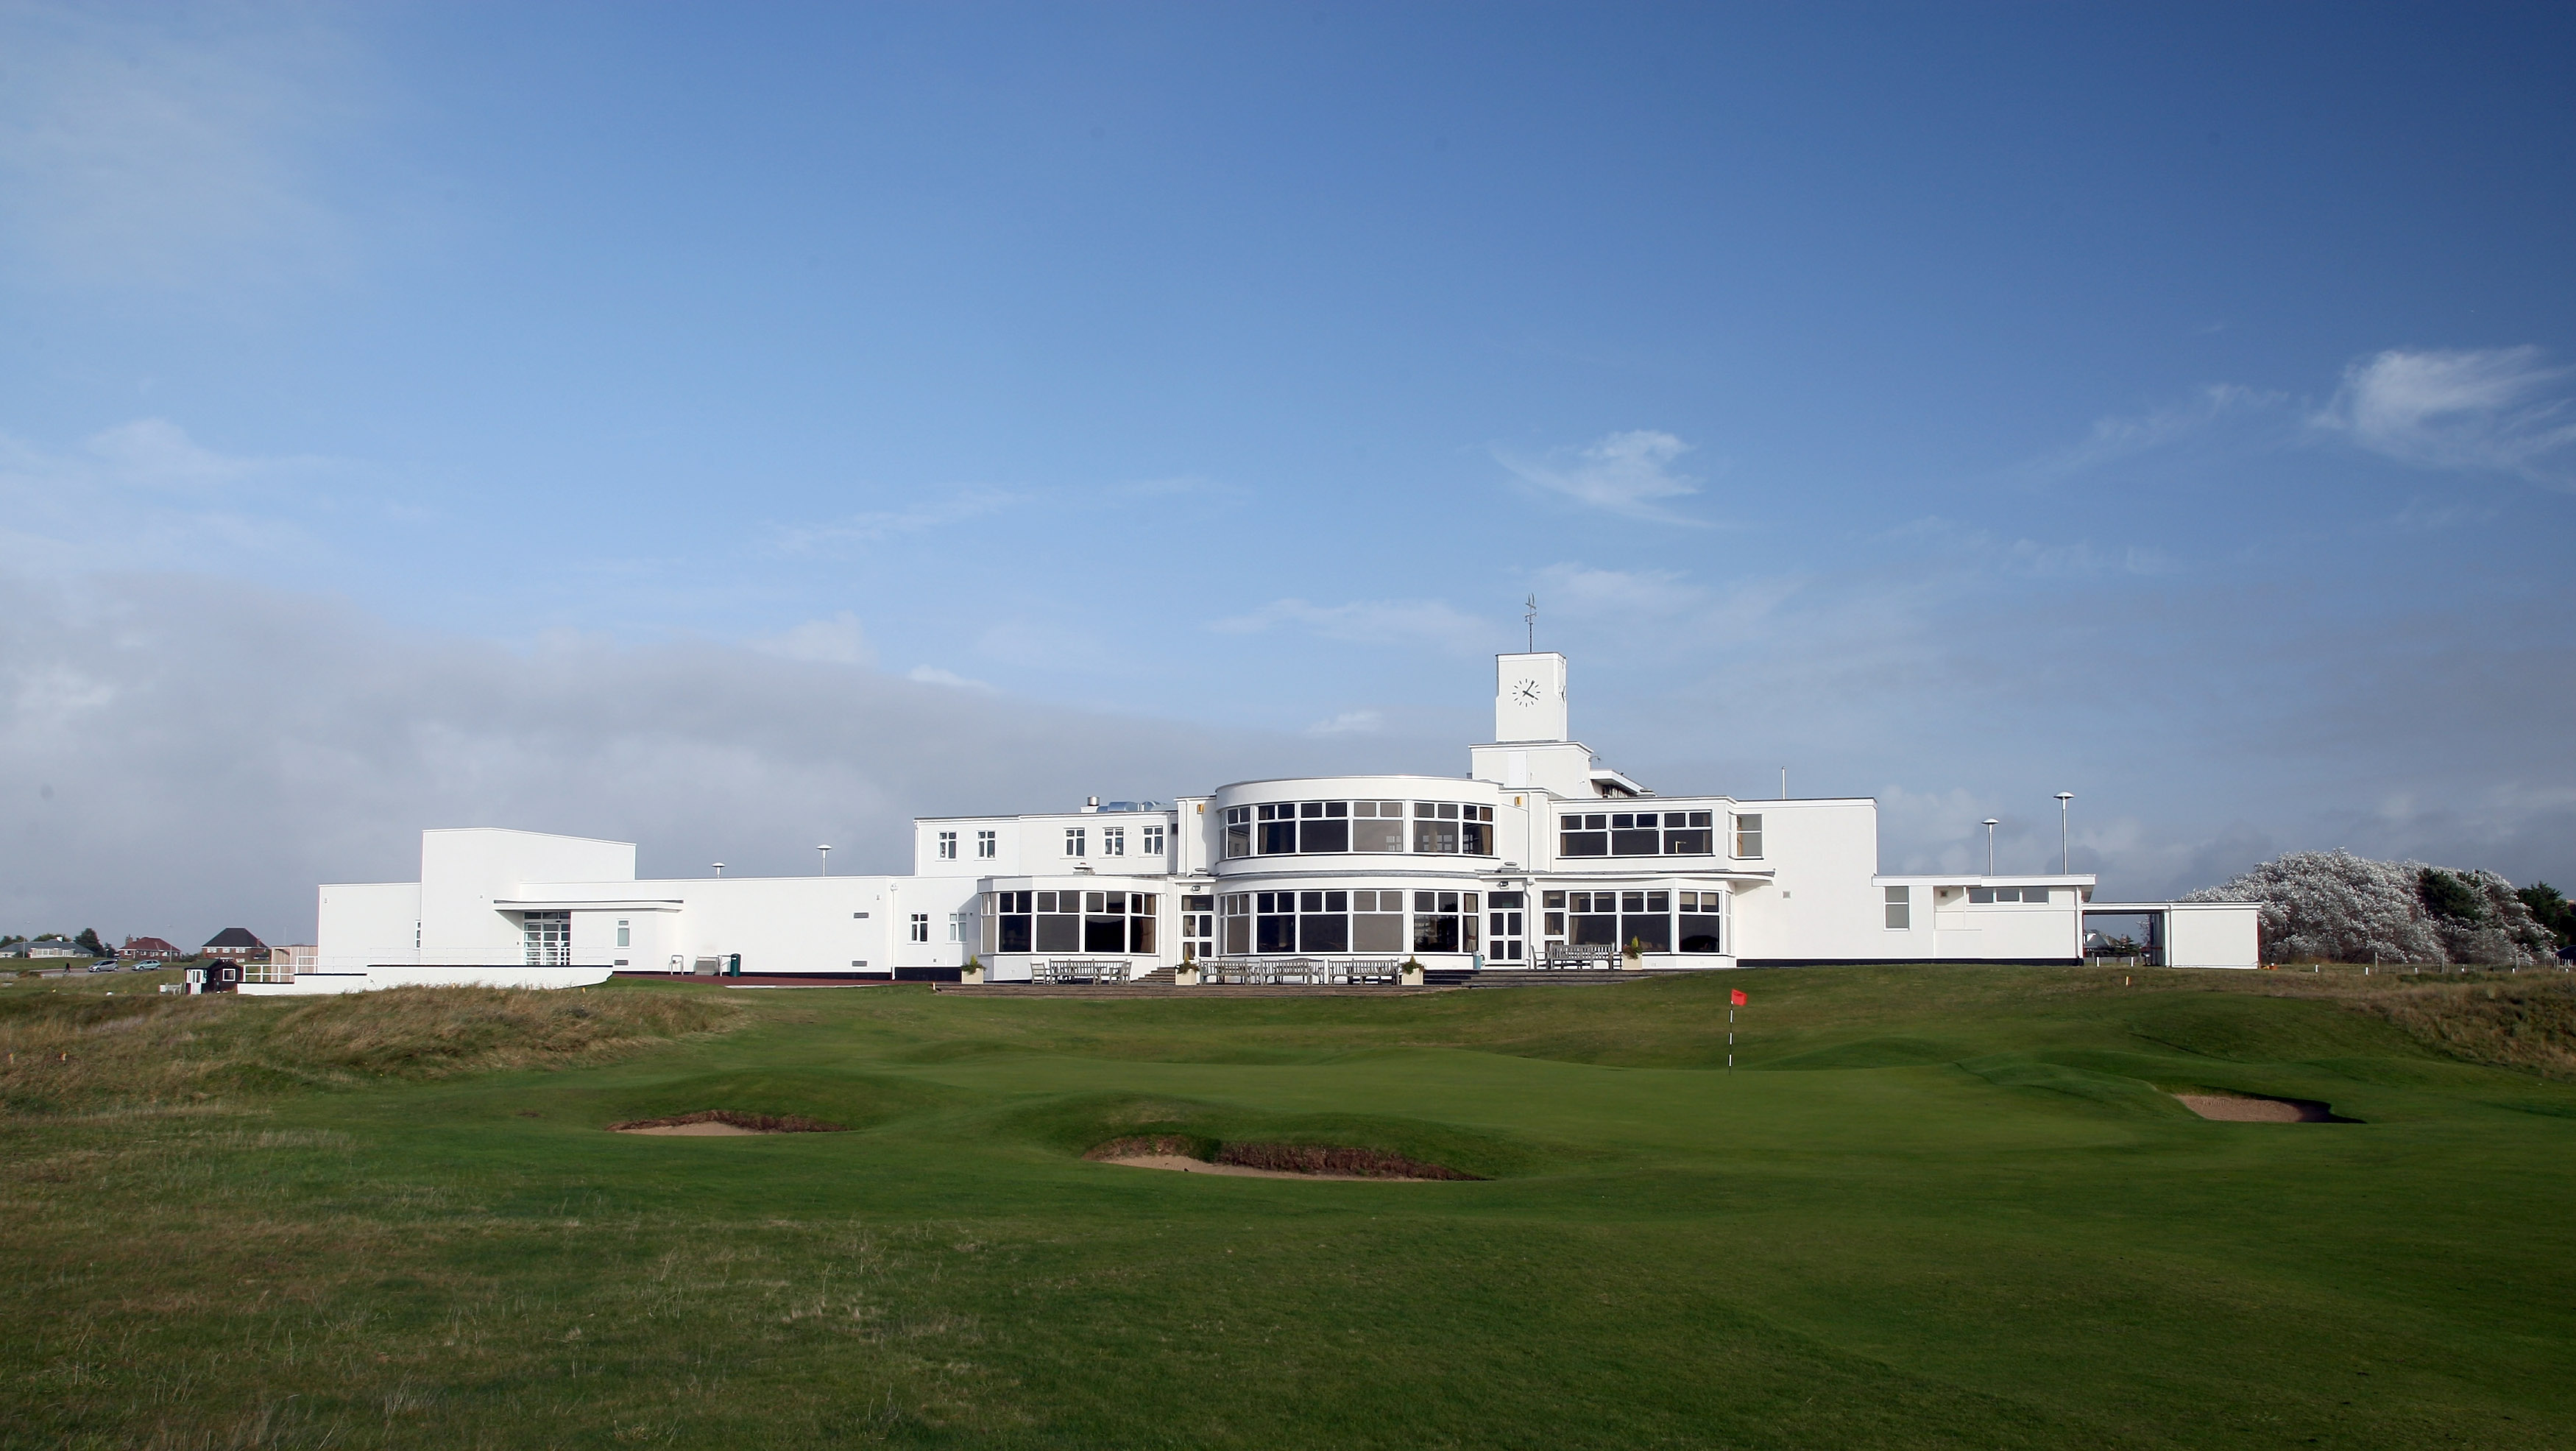 Council wants The Open at Royal Birkdale to leave Sefton with golfing legacy